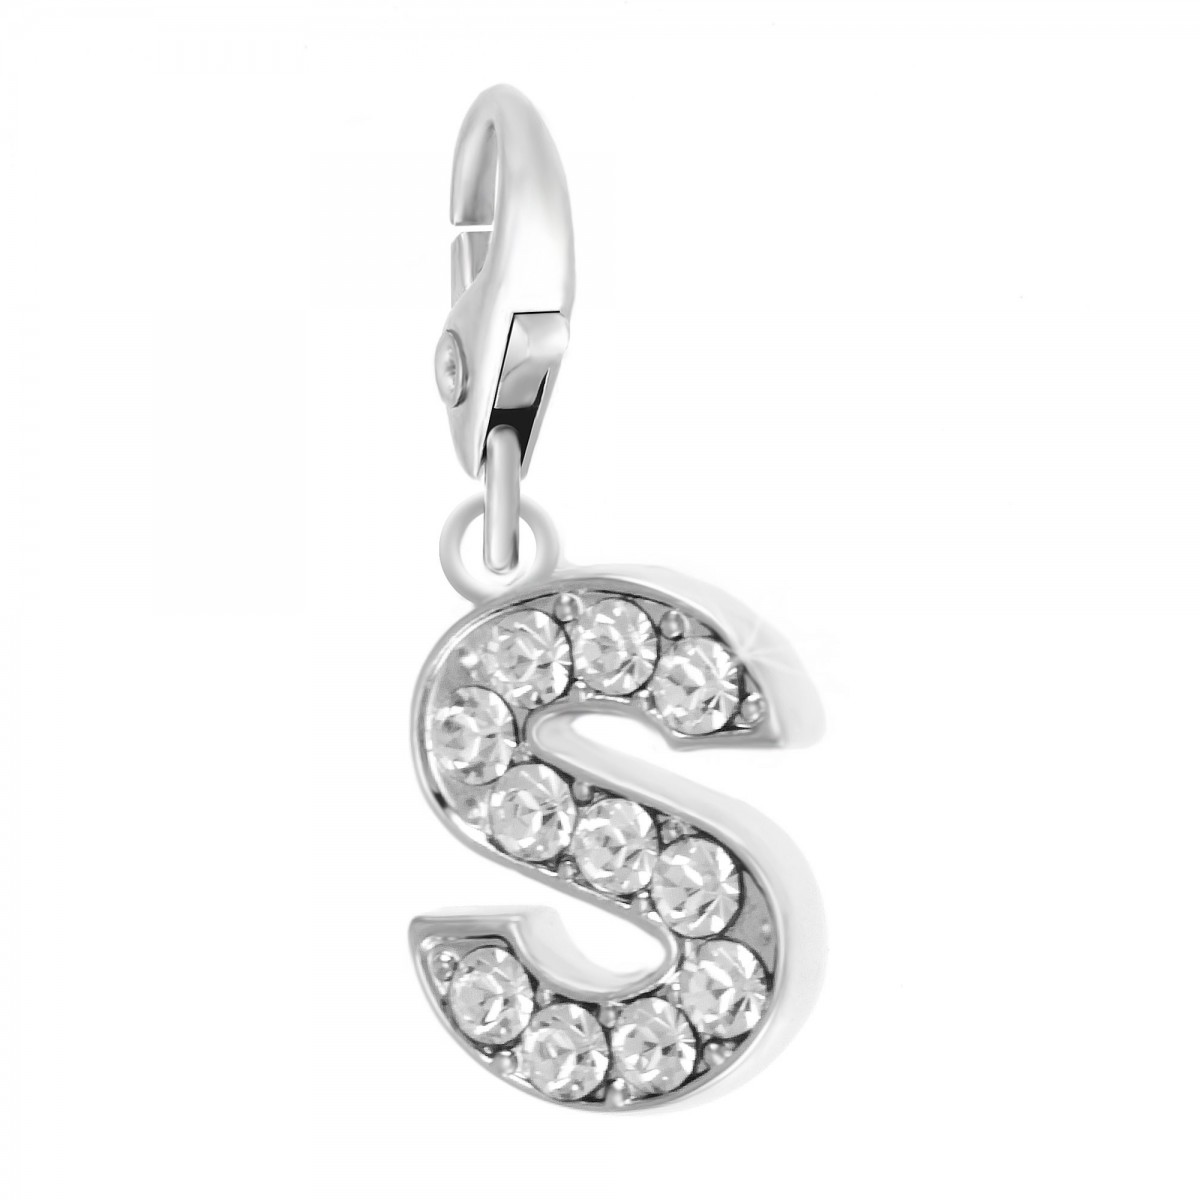 Charm Lettre S So Charm made with Crystal from Swarovski